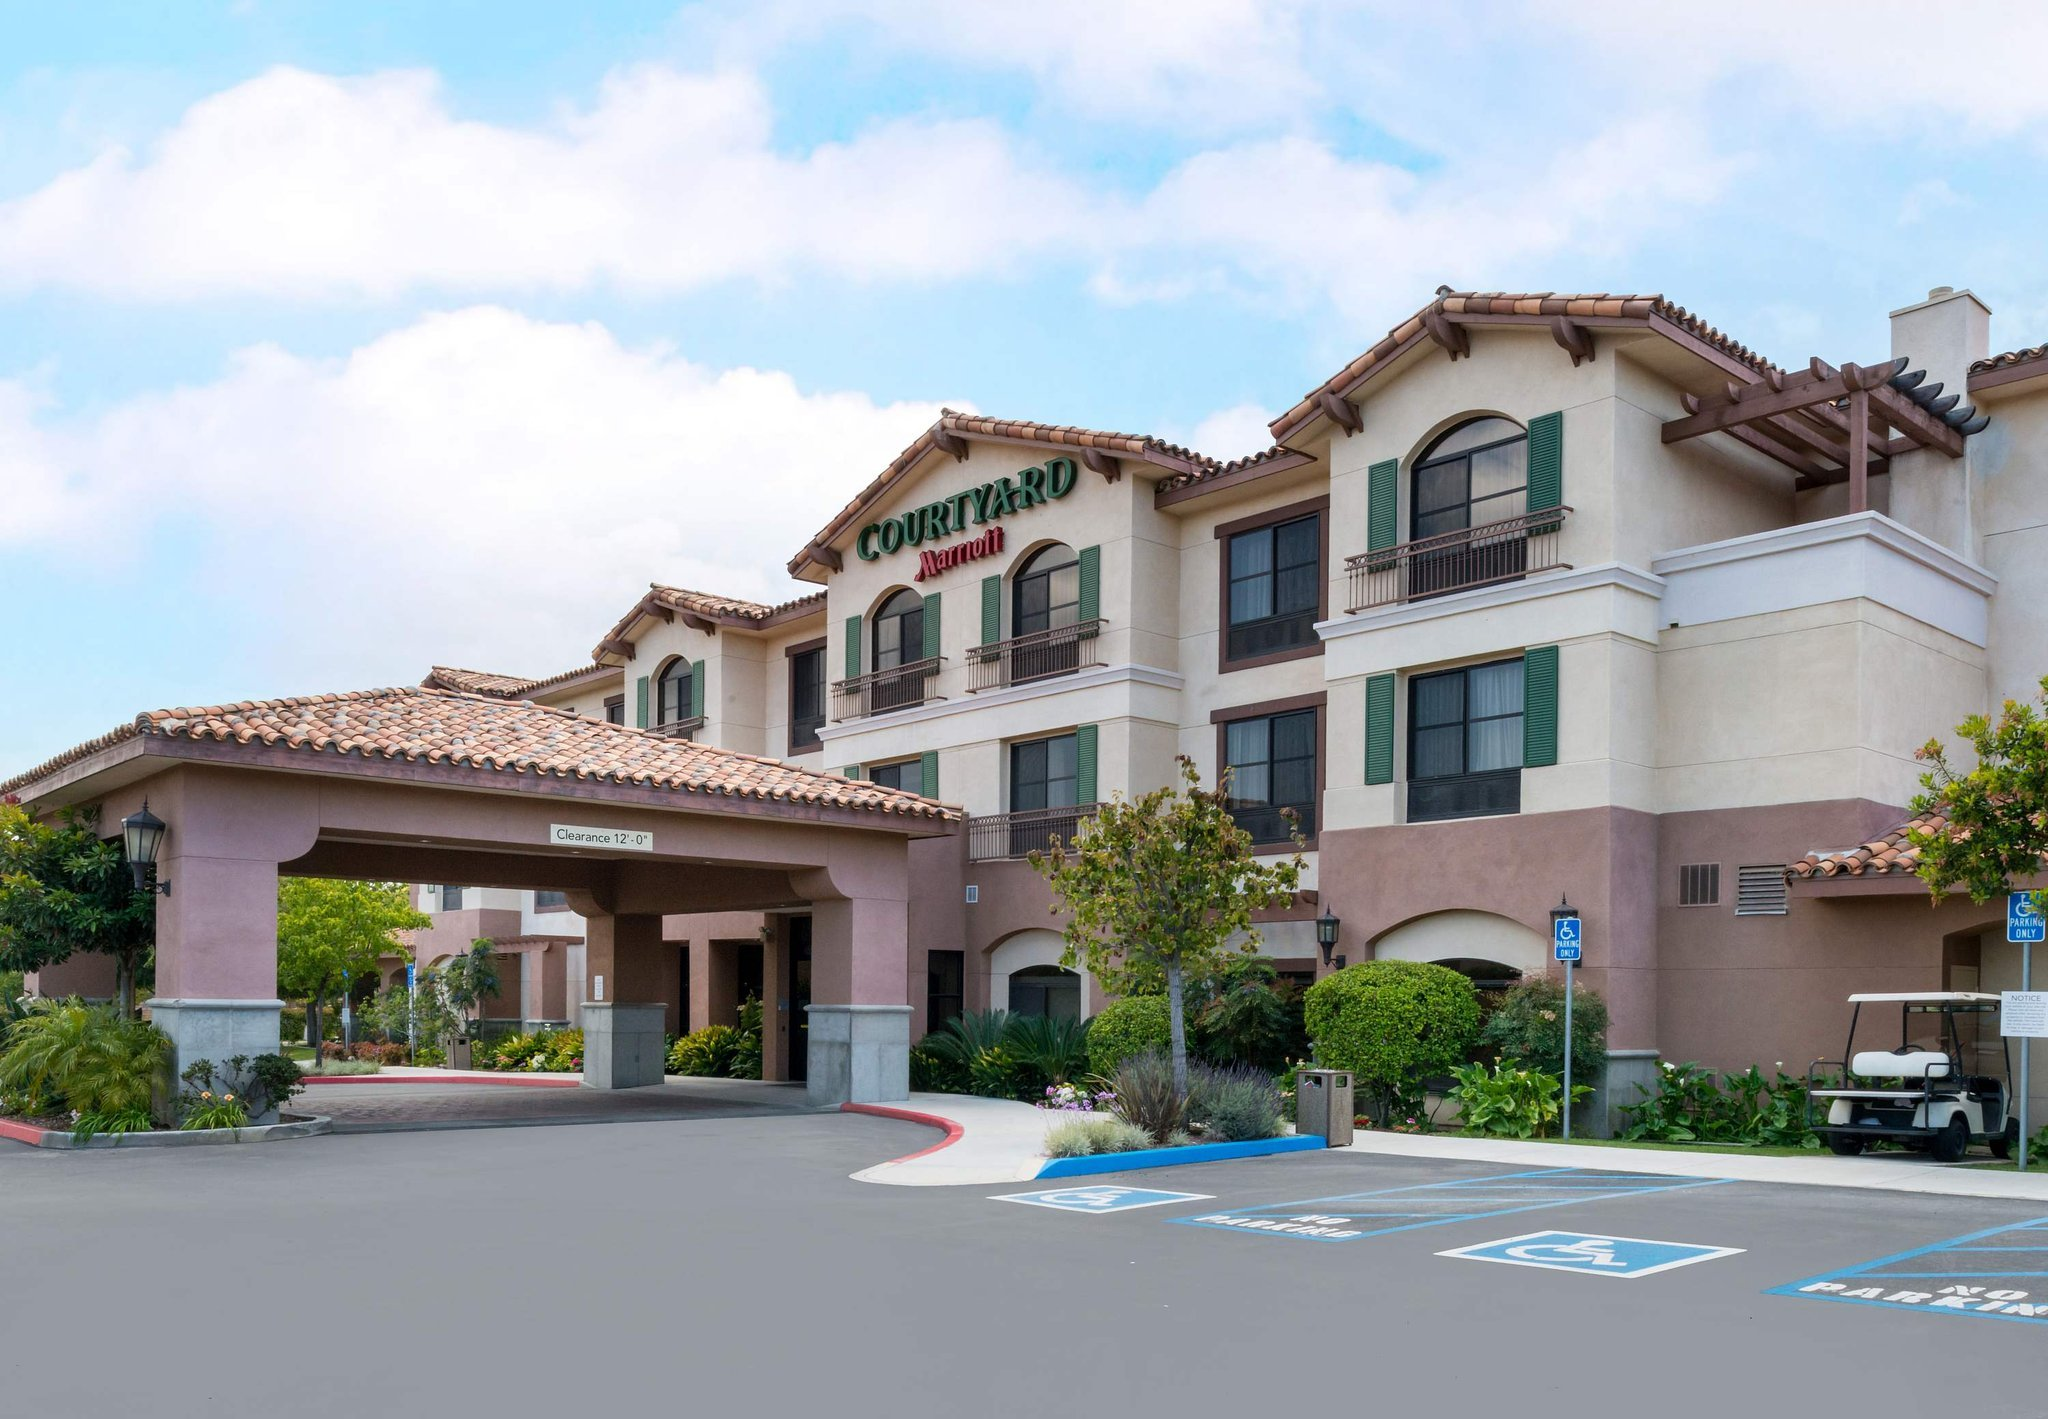 Courtyard Thousand Oaks Ventura County